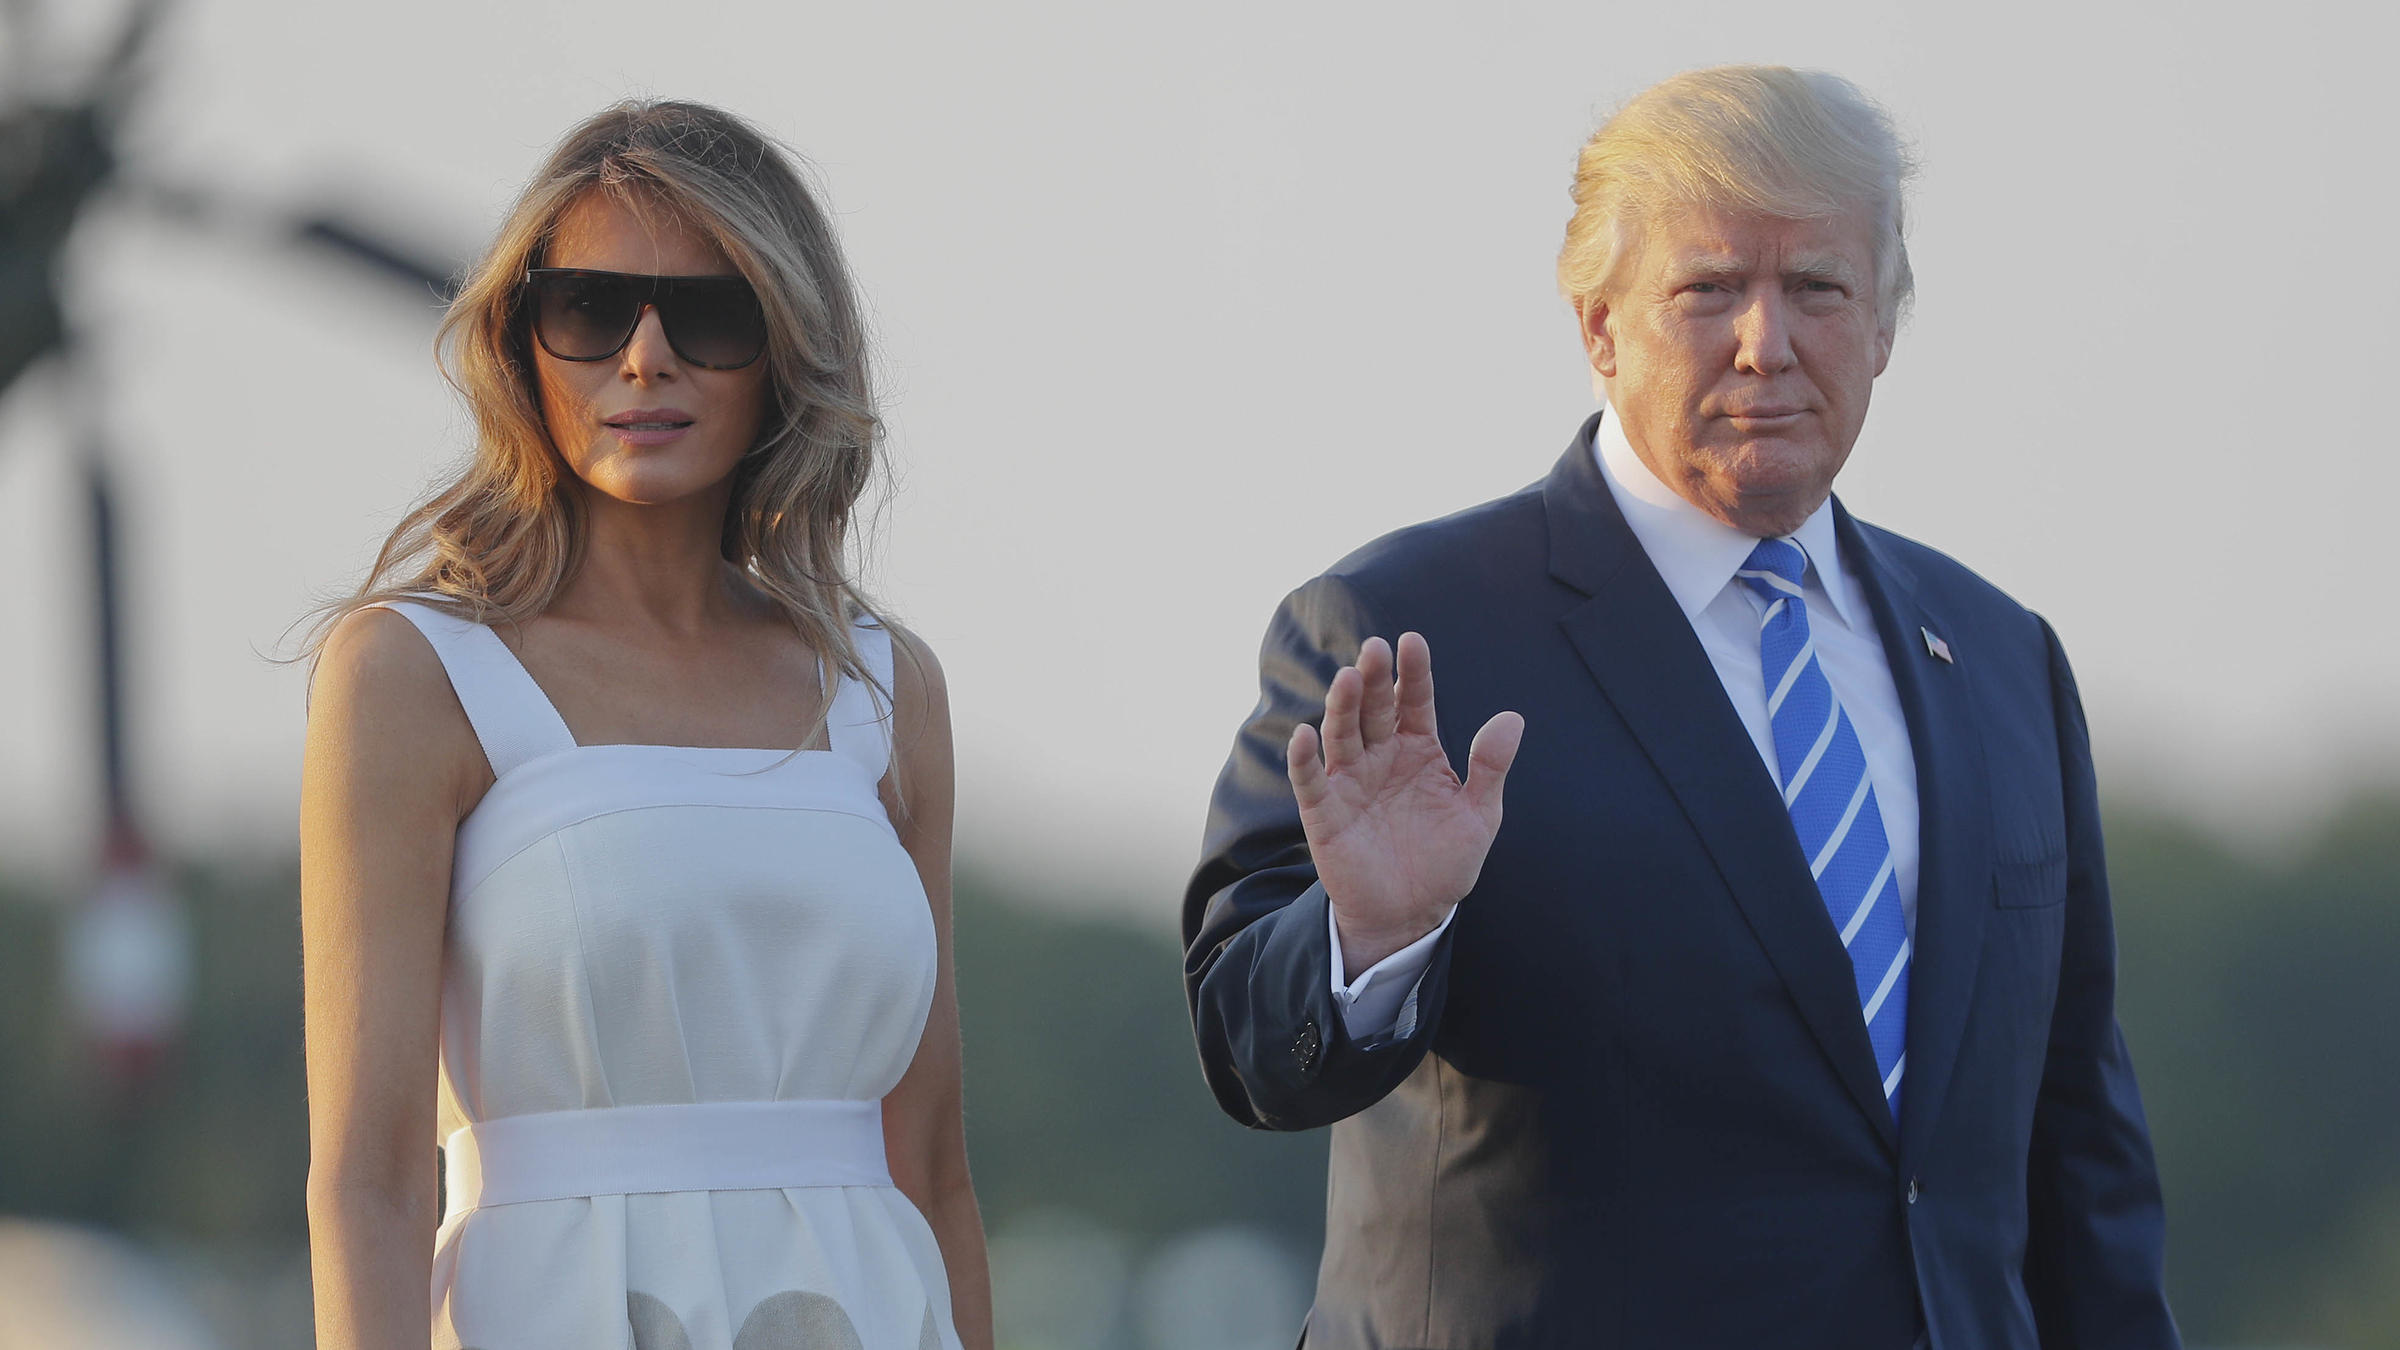 Of Course Donald Trump Looked at the Eclipse Without Glasses""